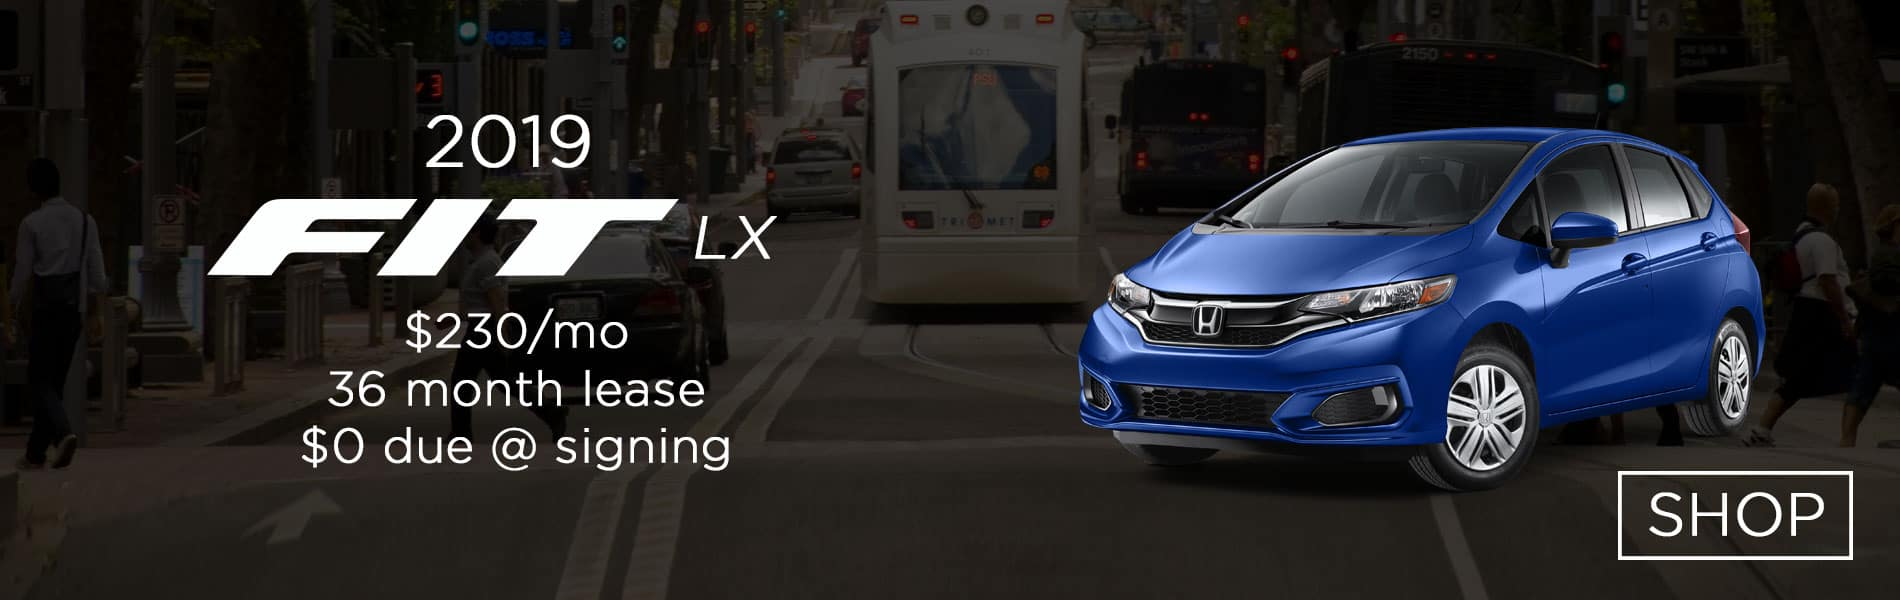 Lease a 2019 Honda Fit LX for $230 per month lease with $0 due at signing